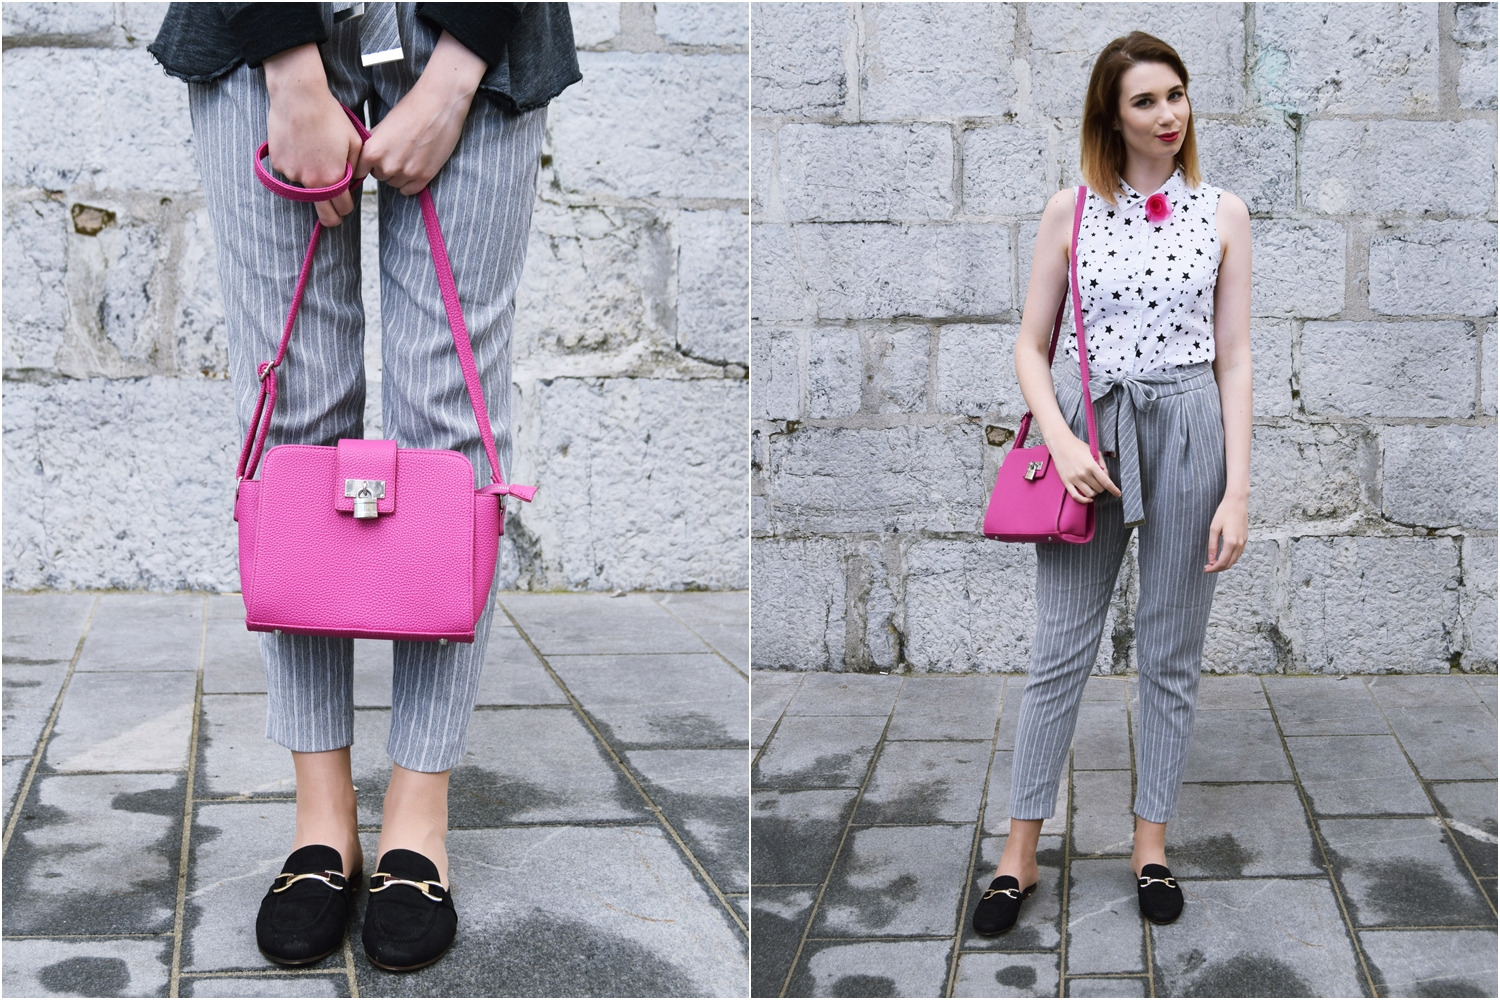 Touch_of_pink_Zalabell_fashion_style_2